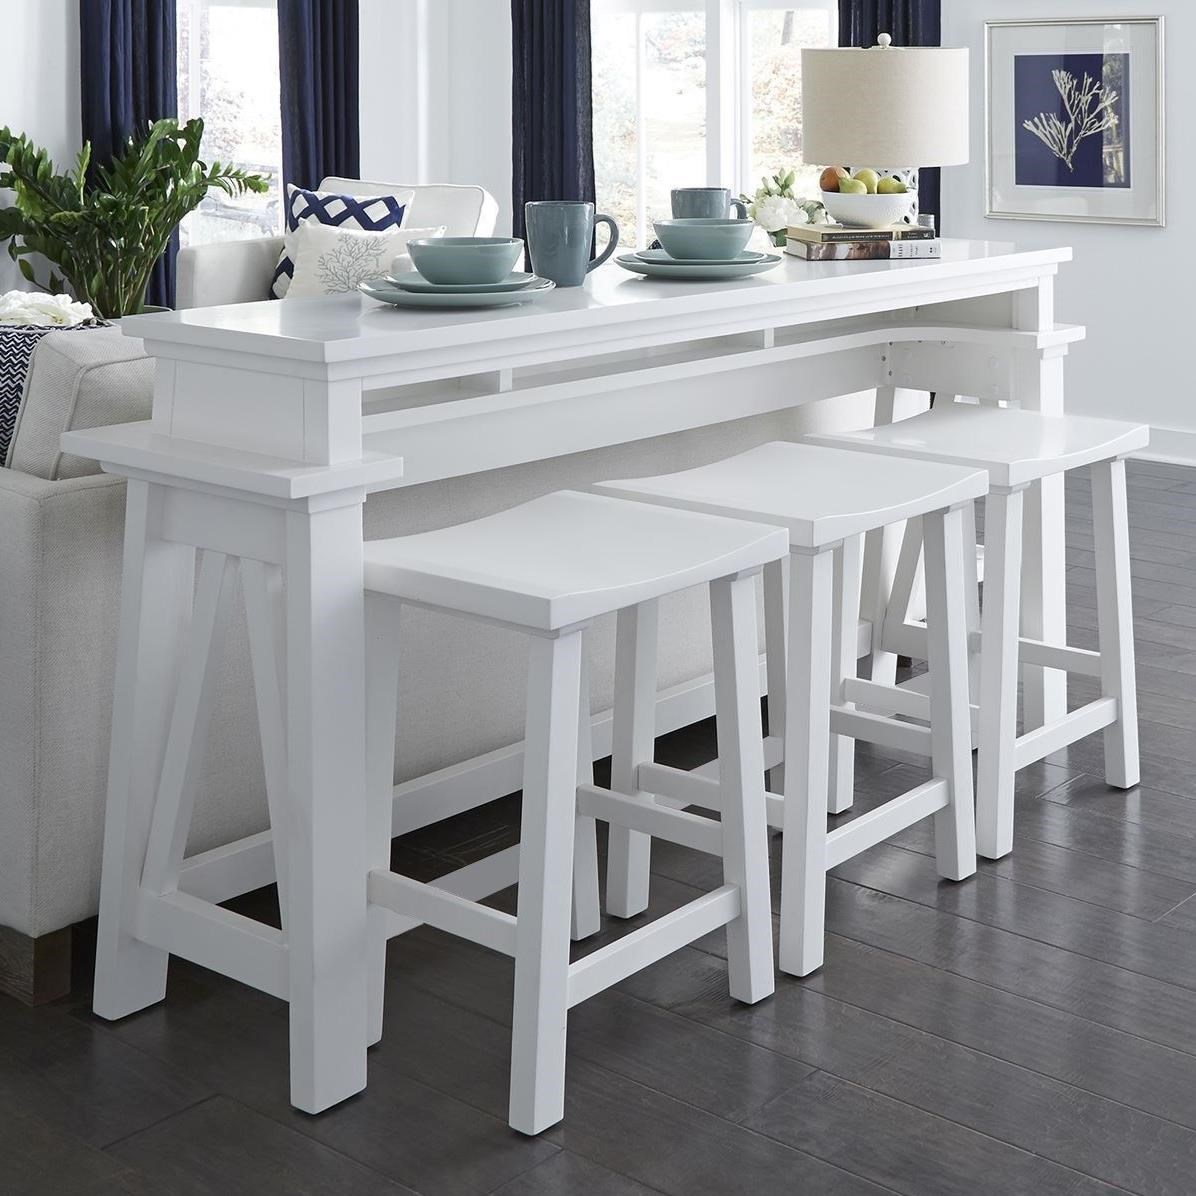 Summer House I 4-Piece Counter Height Console Bar Table Set by Libby at Walker's Furniture